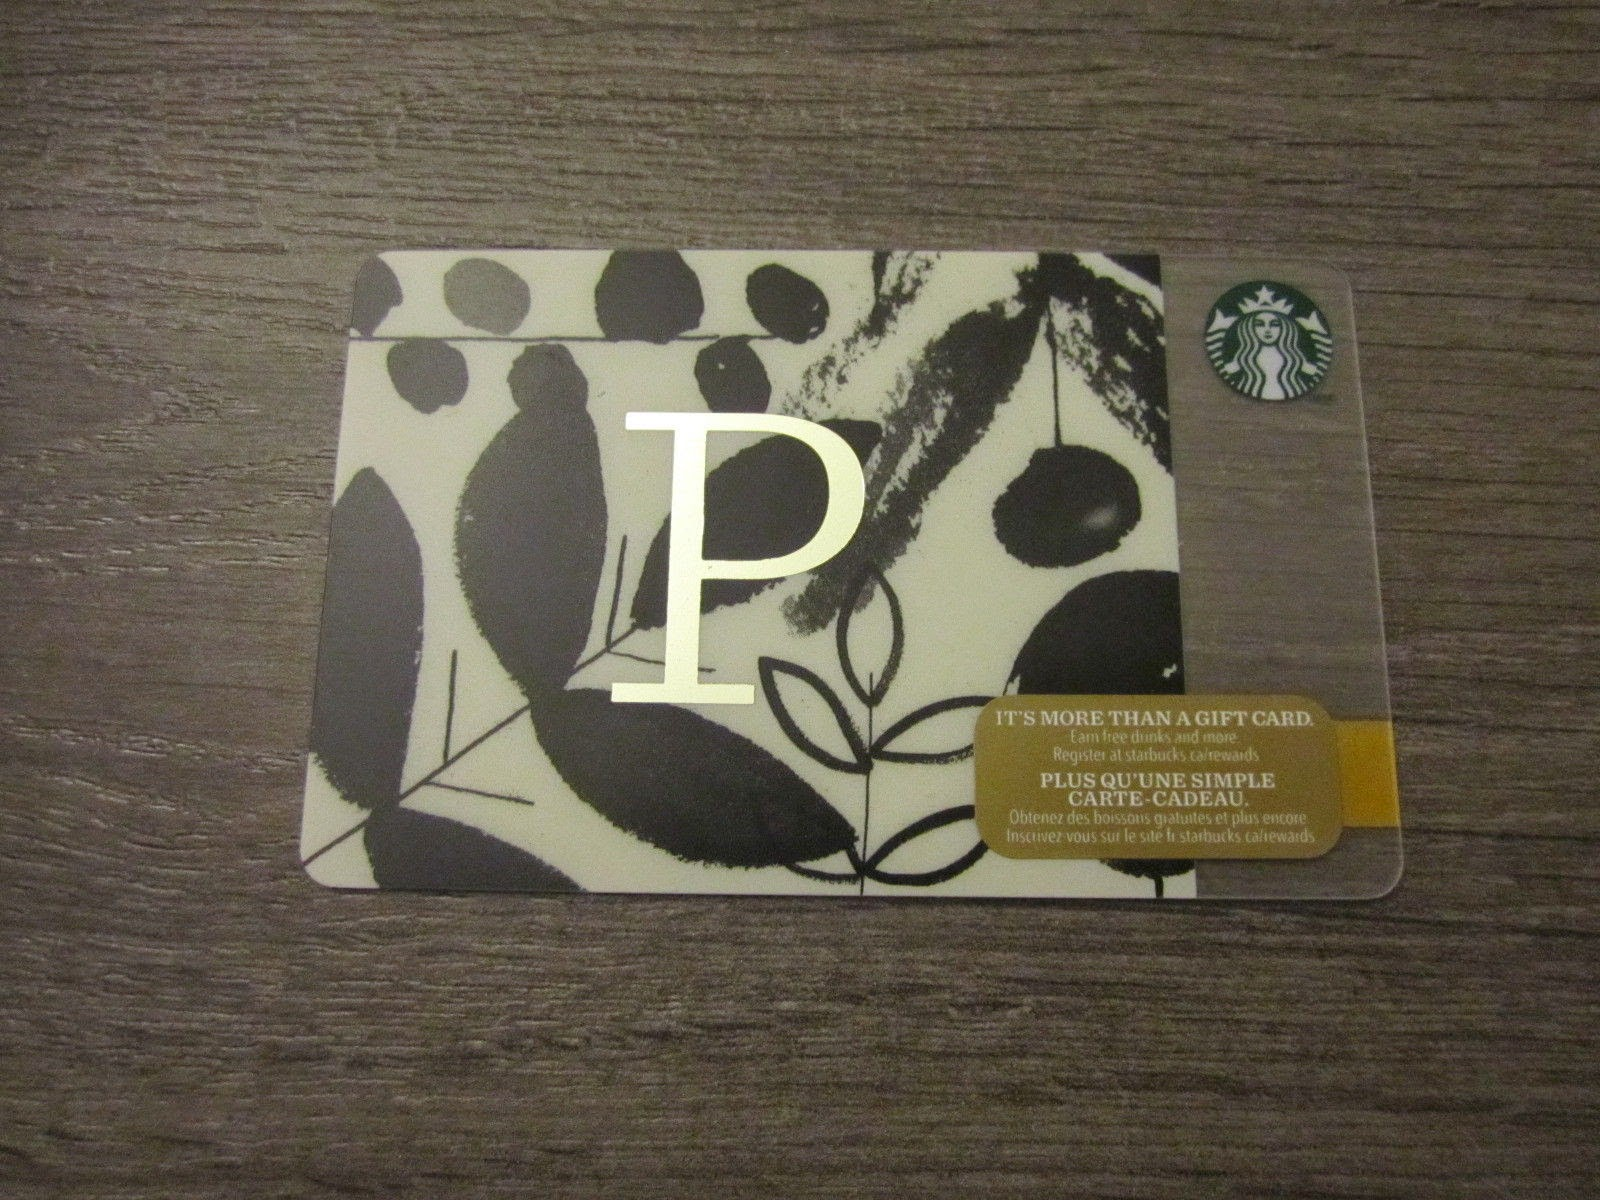 All 99 Cards Holiday Display Of Gift Cards At Your Local Starbucks